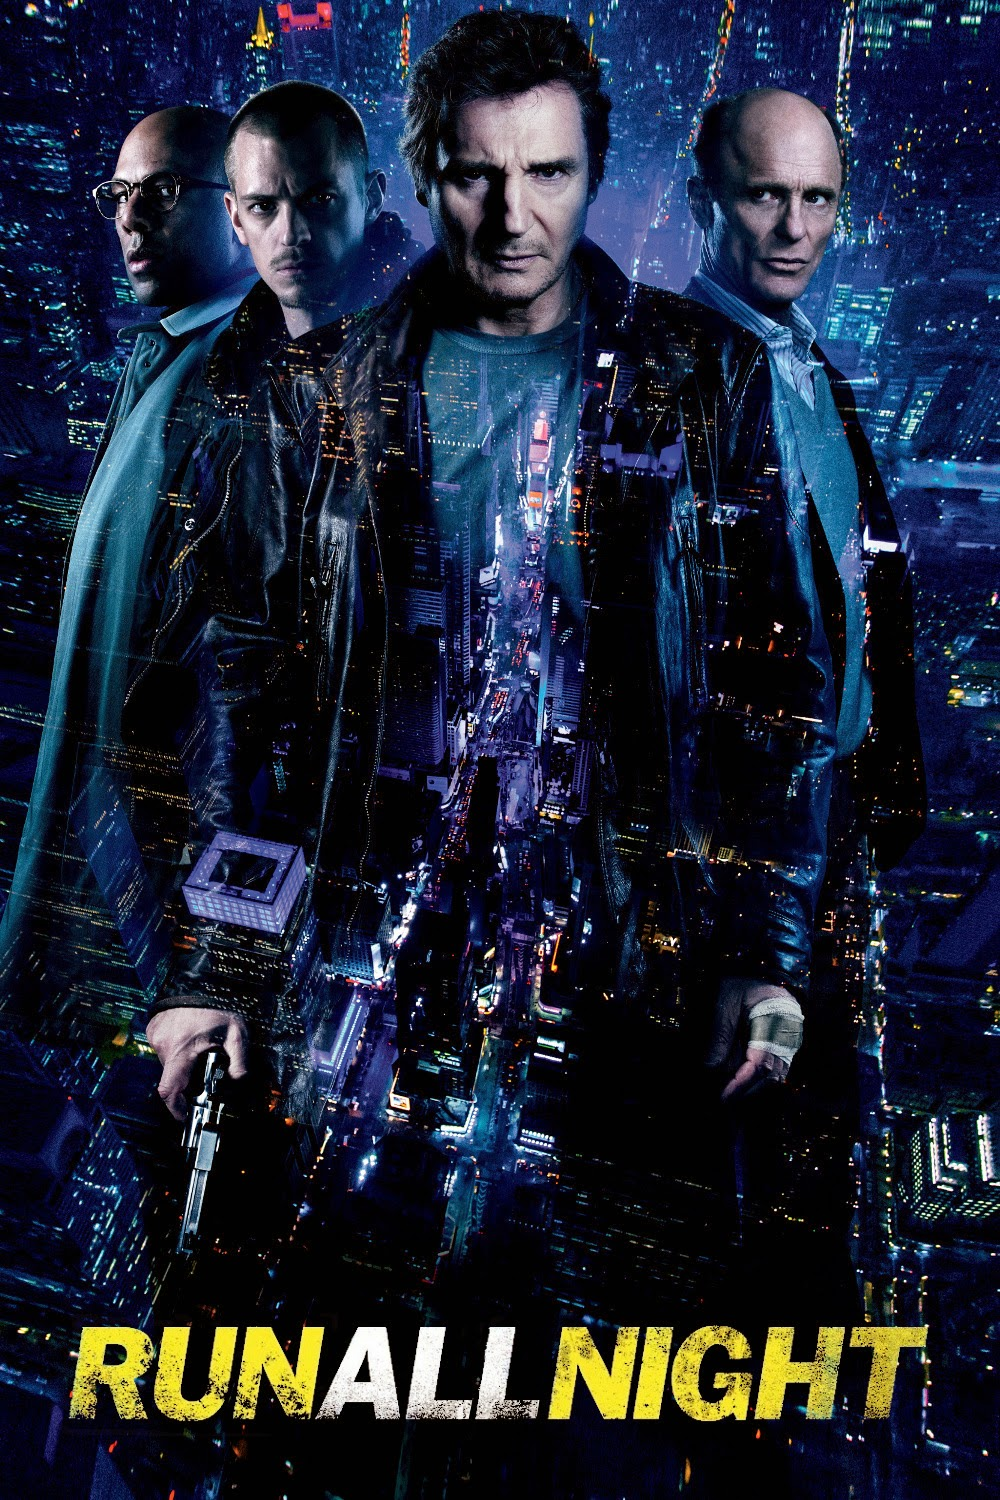 run all night full movie download and watch 2015 free